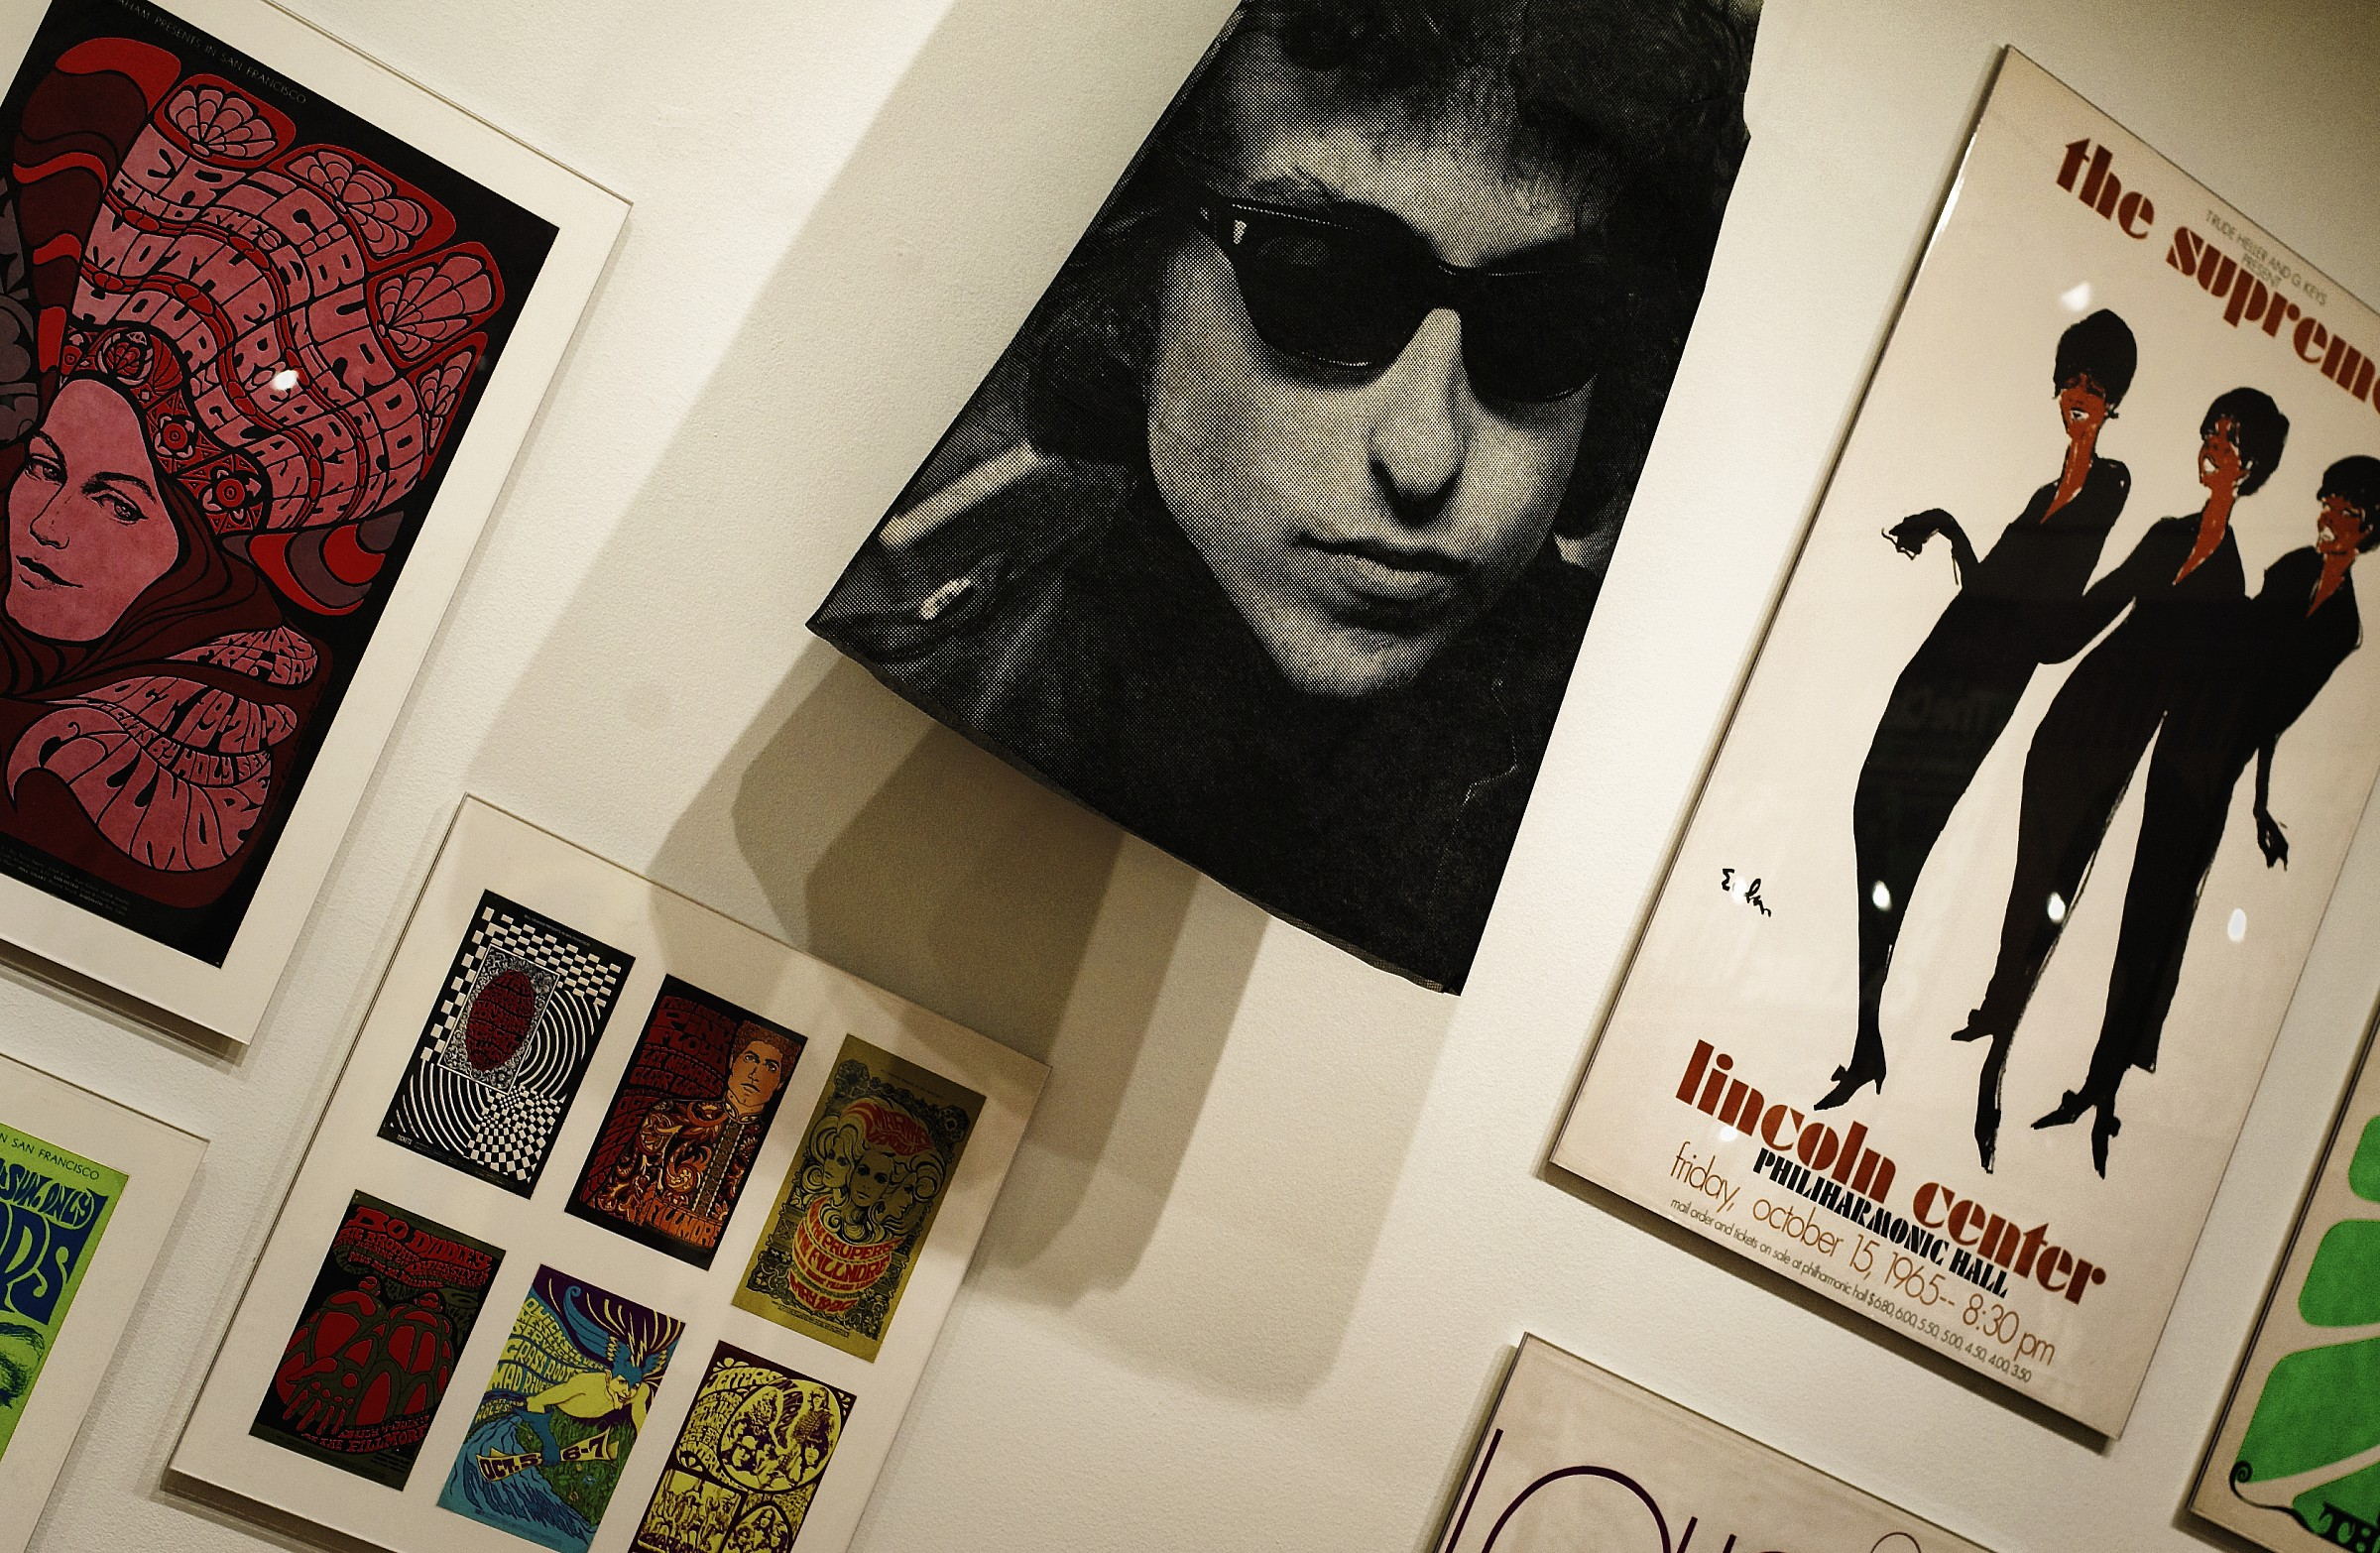 B.Dylan on the wall....